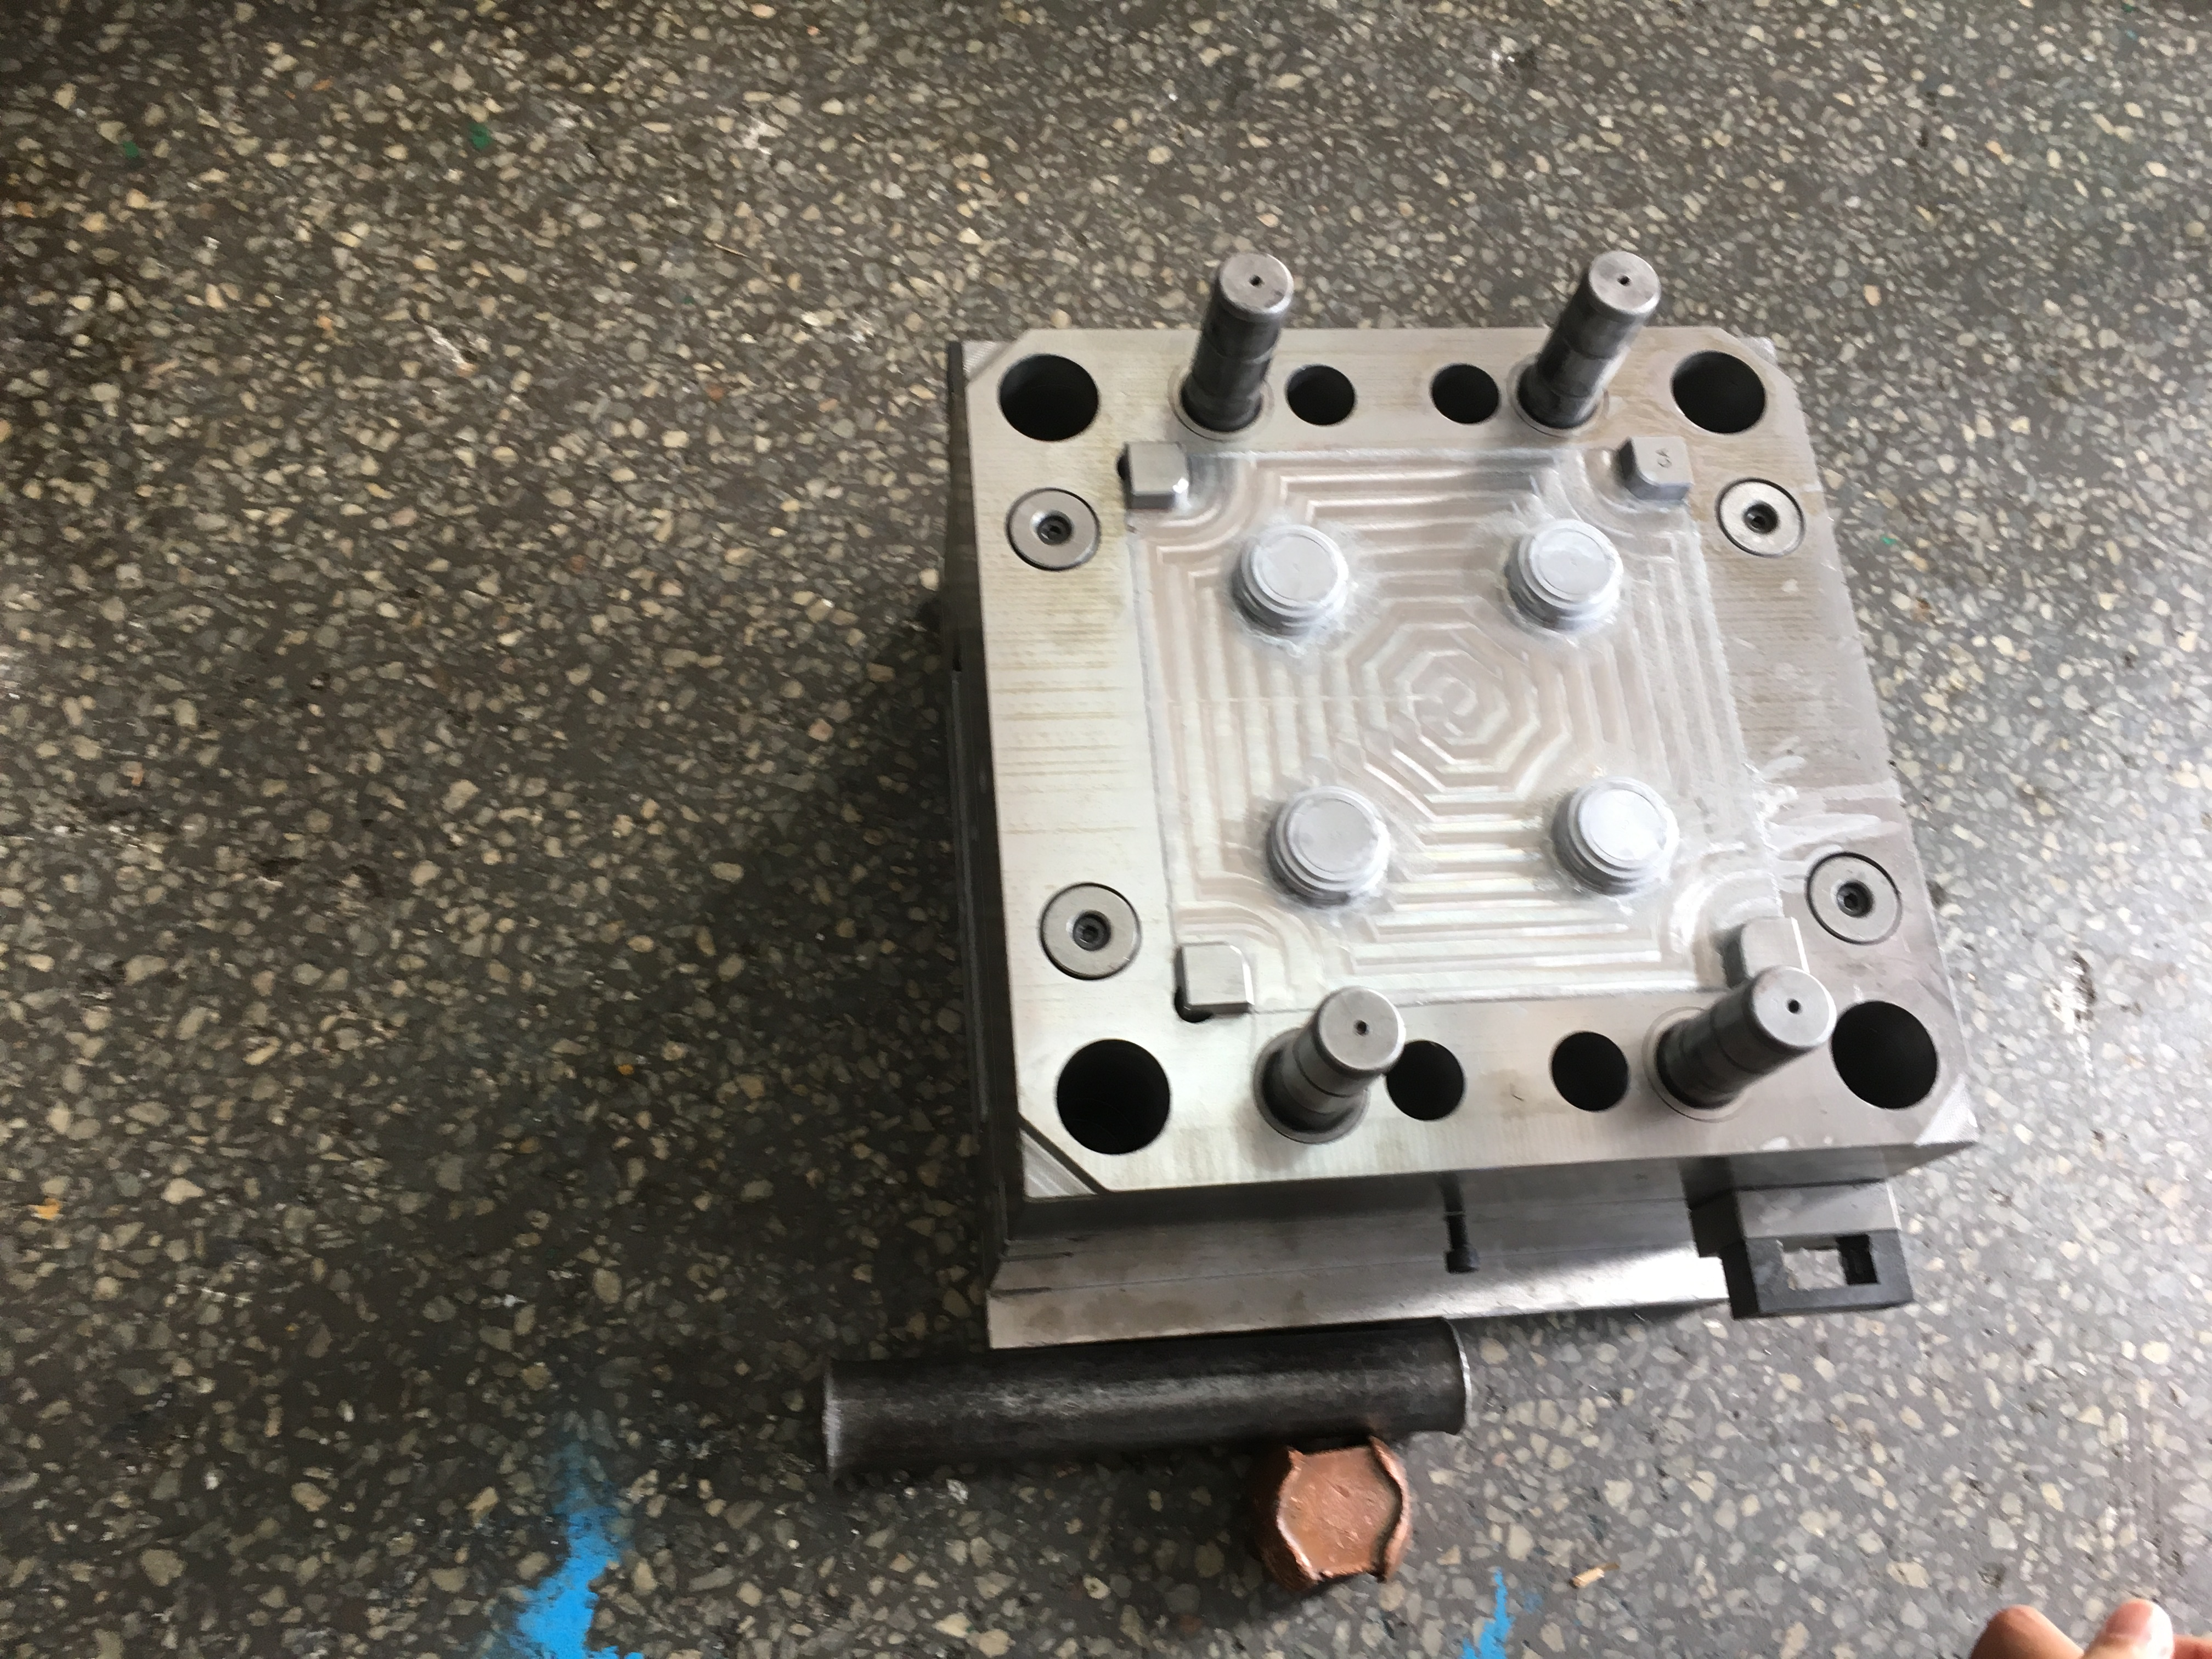 Components of an Injection Mold